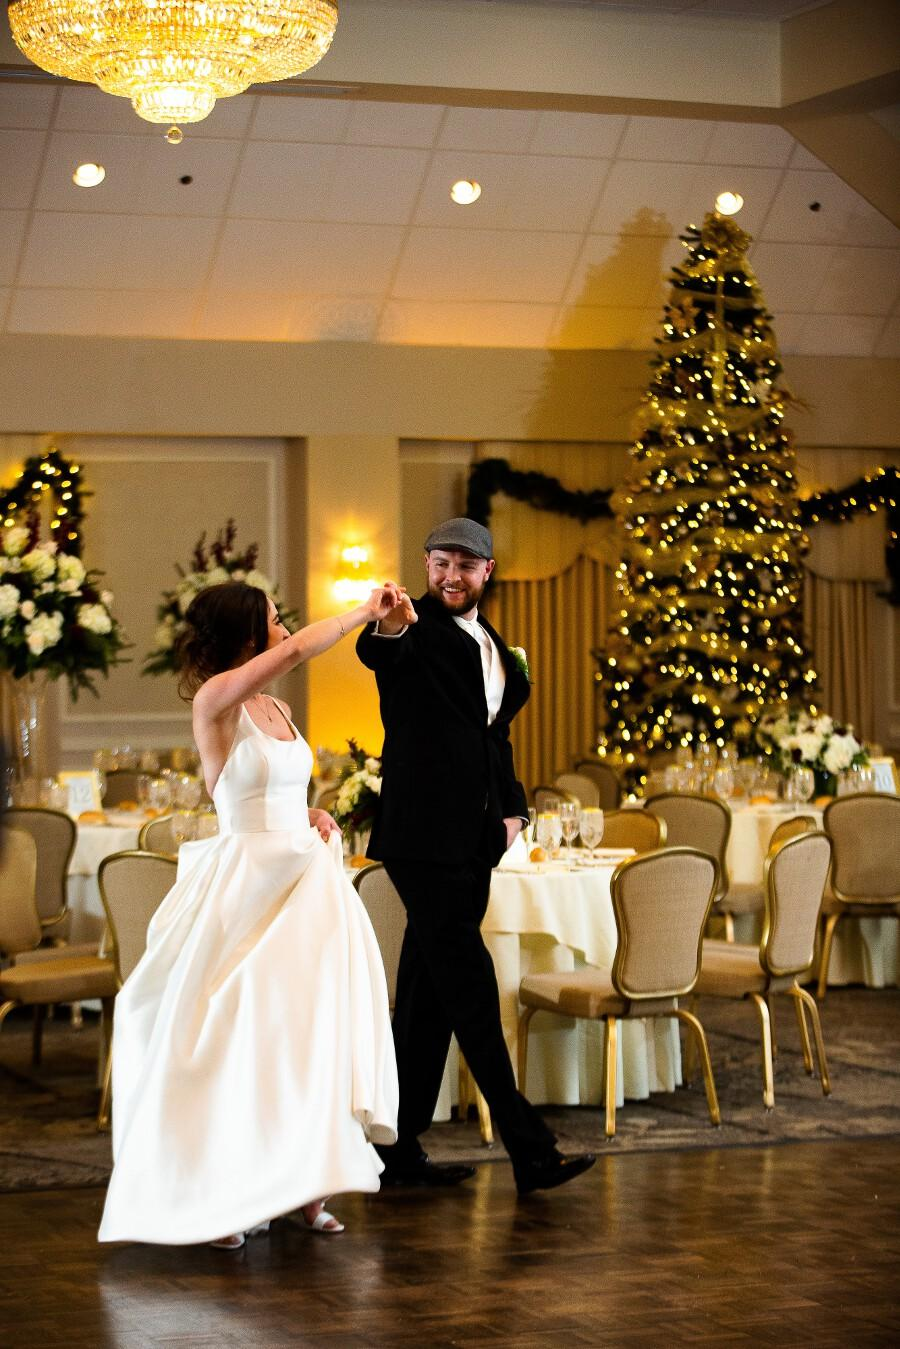 Bride and groom walk in dancing steps in reception room